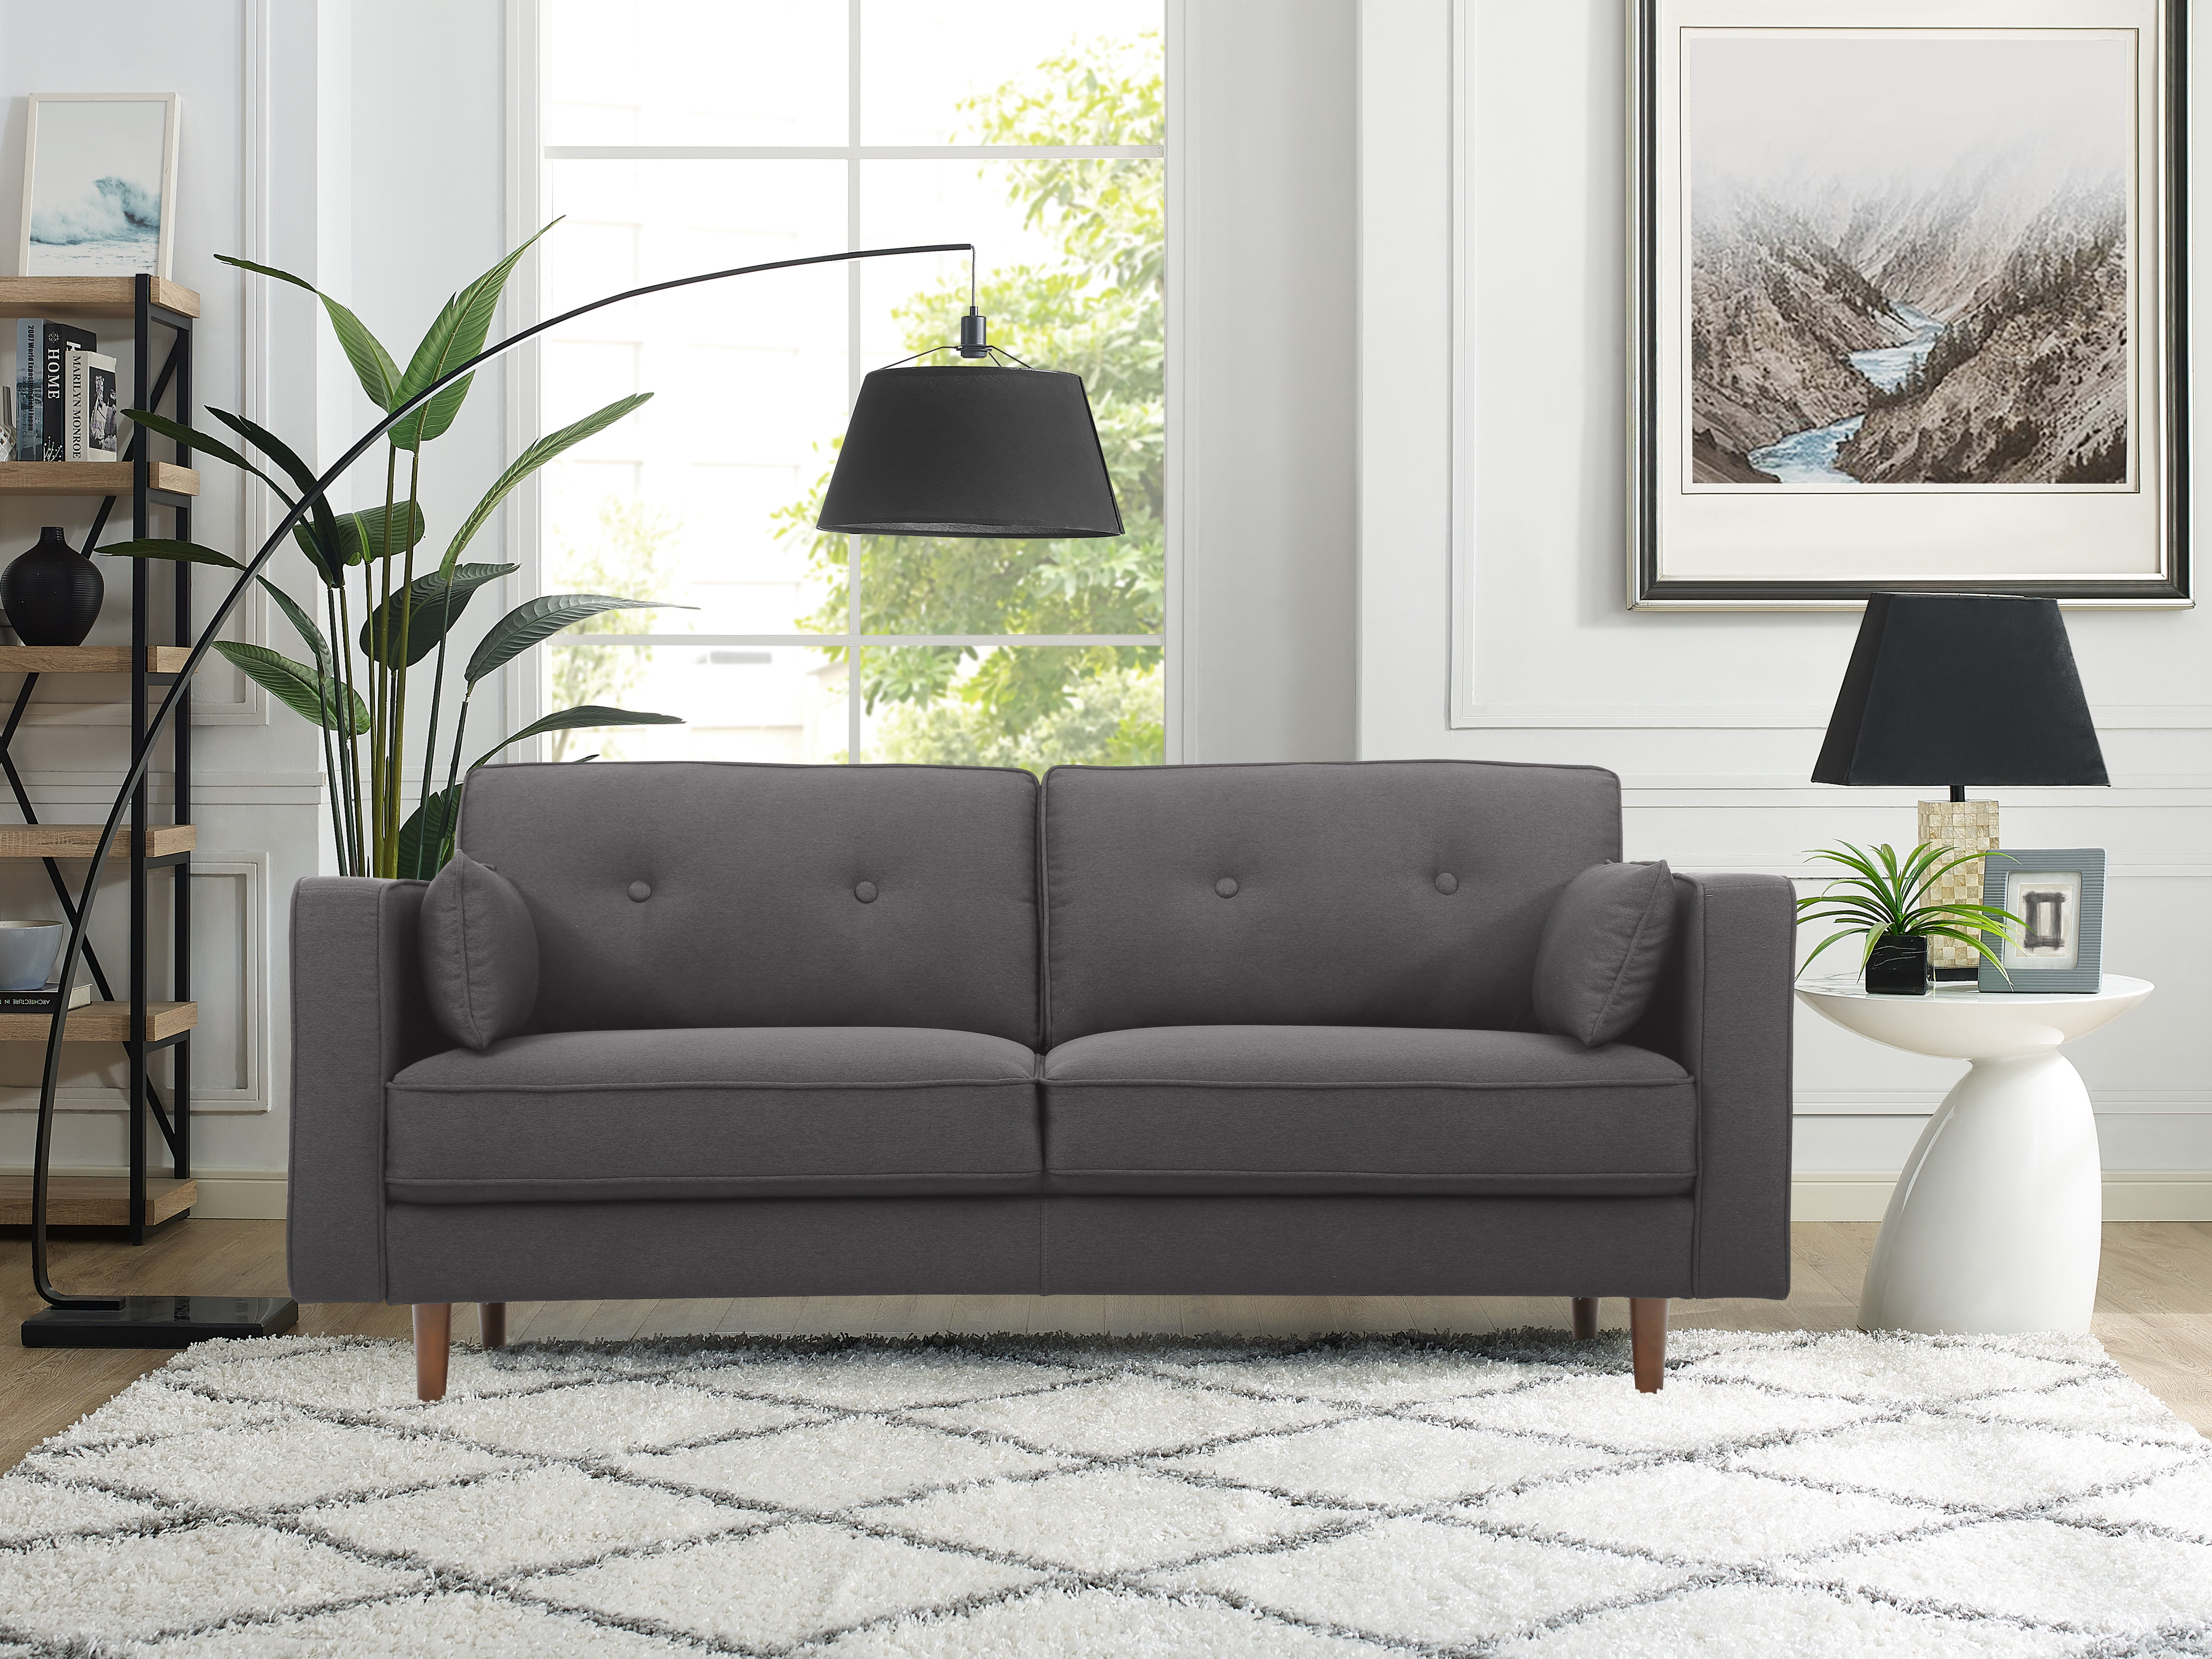 Superbe Lifestyle Solutions Tanany Mid Century Modern Design Upholstery Fabric  Sofa, Heather Grey